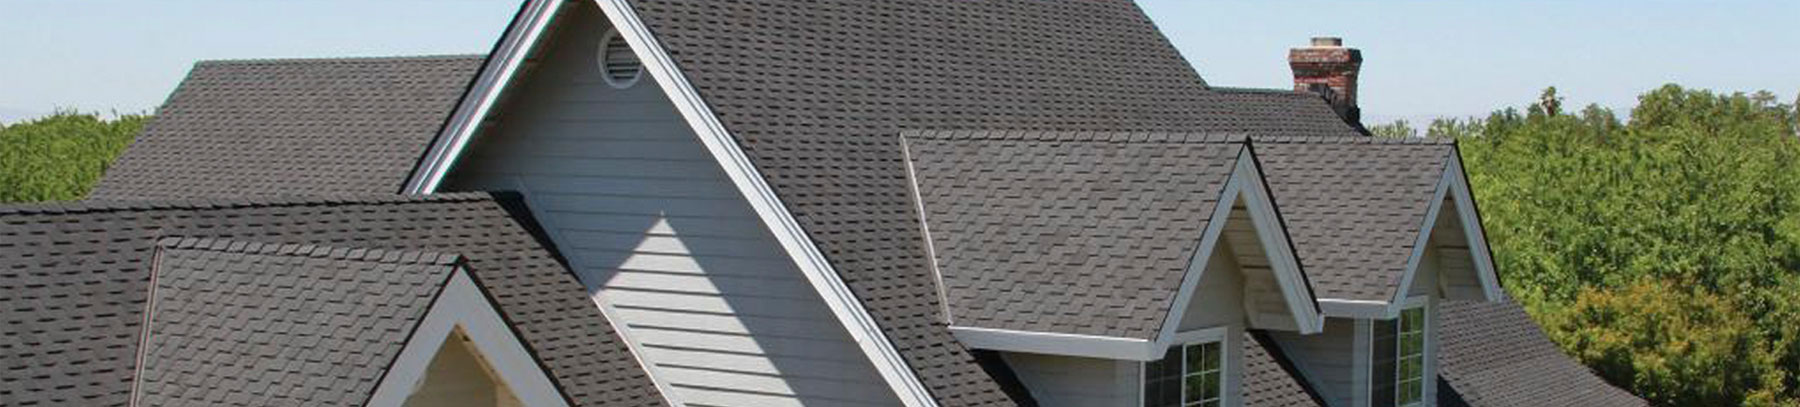 Roof Repair near Nutley NJ